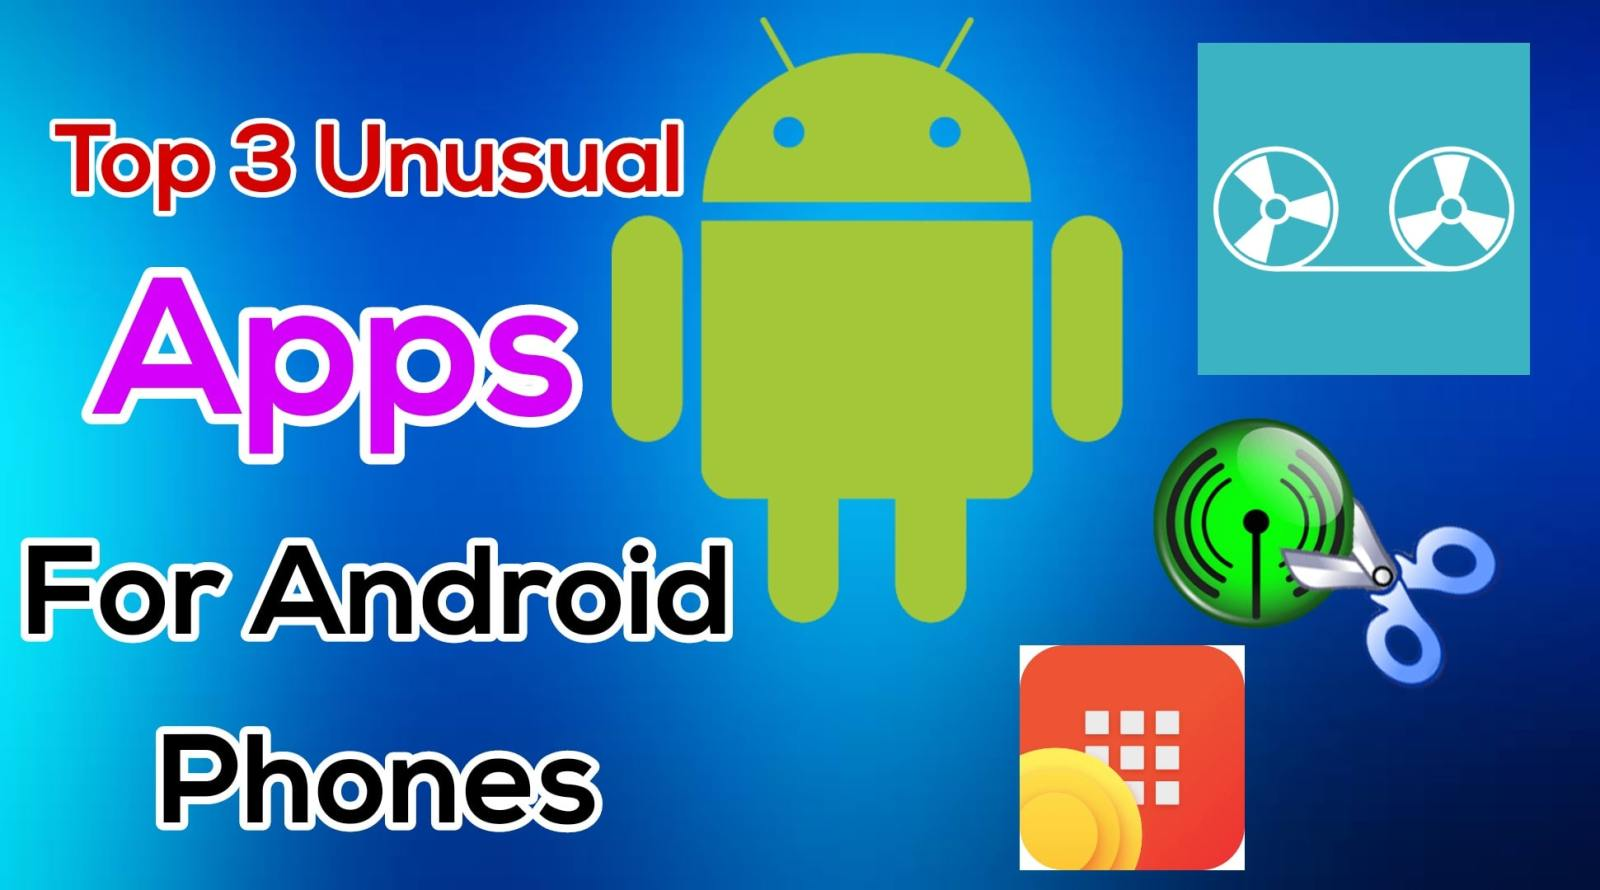 Top 3 Unusual Apps for Your Android Phones